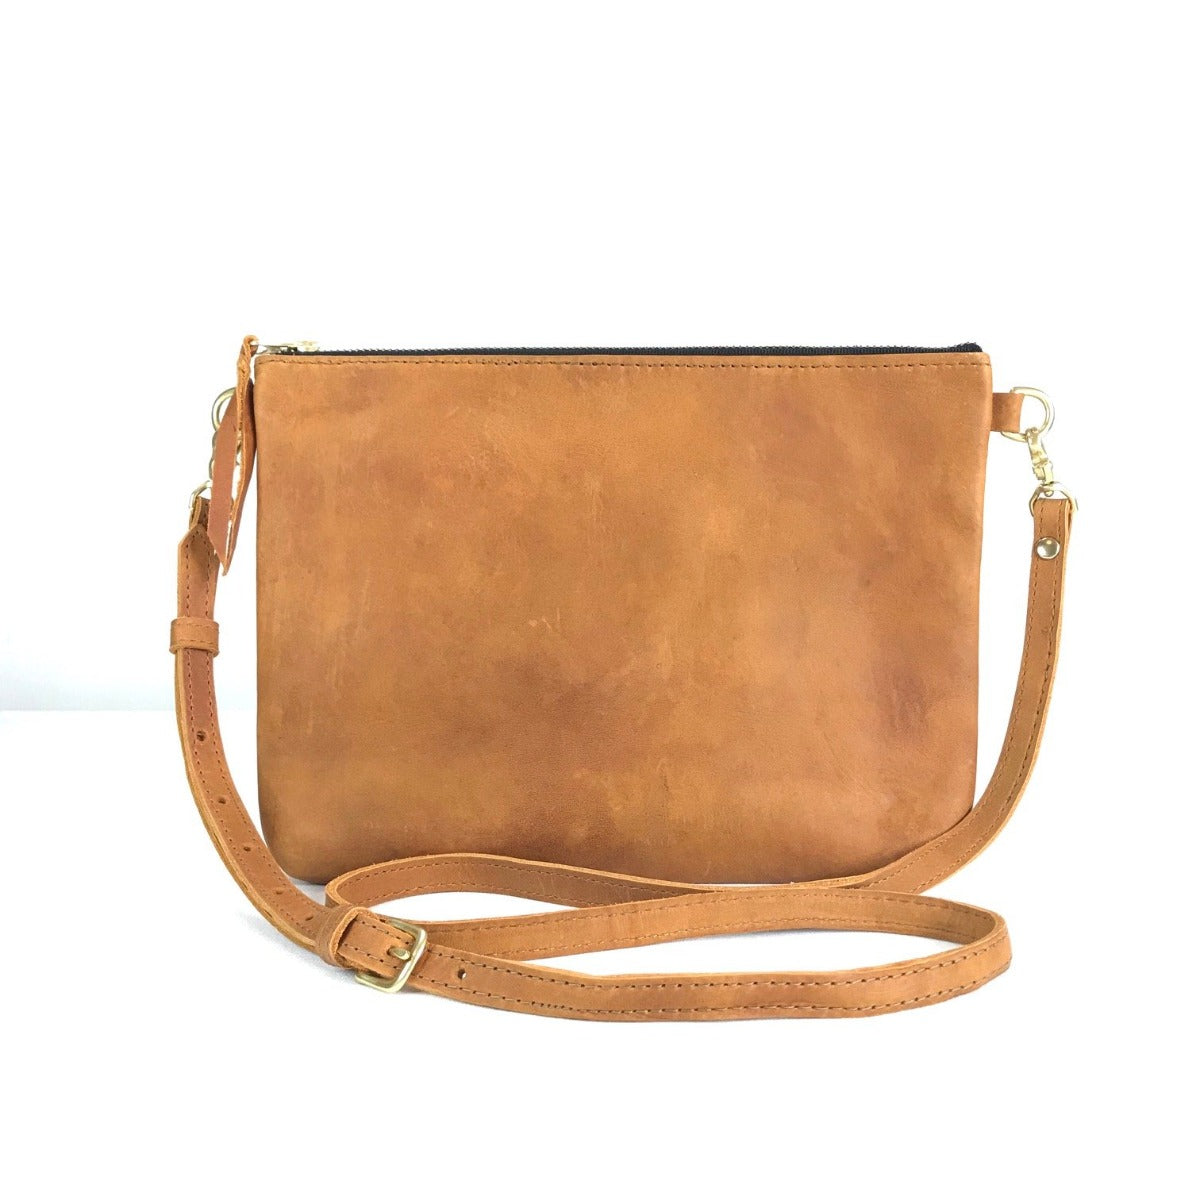 "Antigua Leather Cross Body Clutch (1"" base) - tan leather"